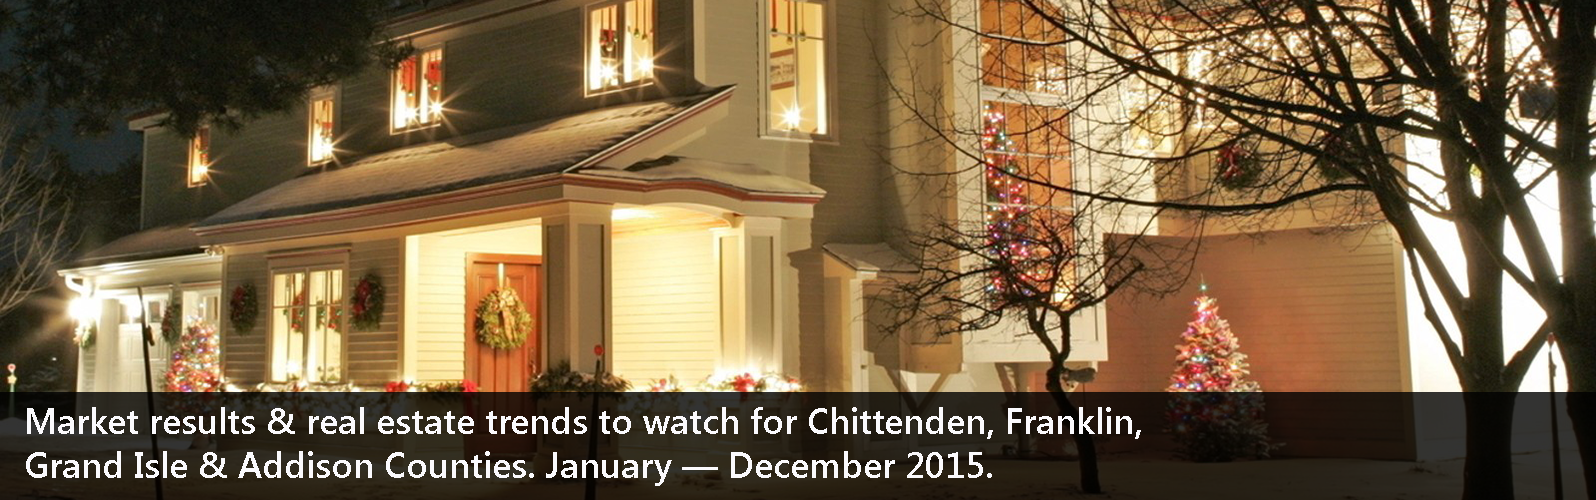 Market results & real estate trends to watch for Chittenden, Franklin, Grand Isle & Addison Counties. January — December 2015.